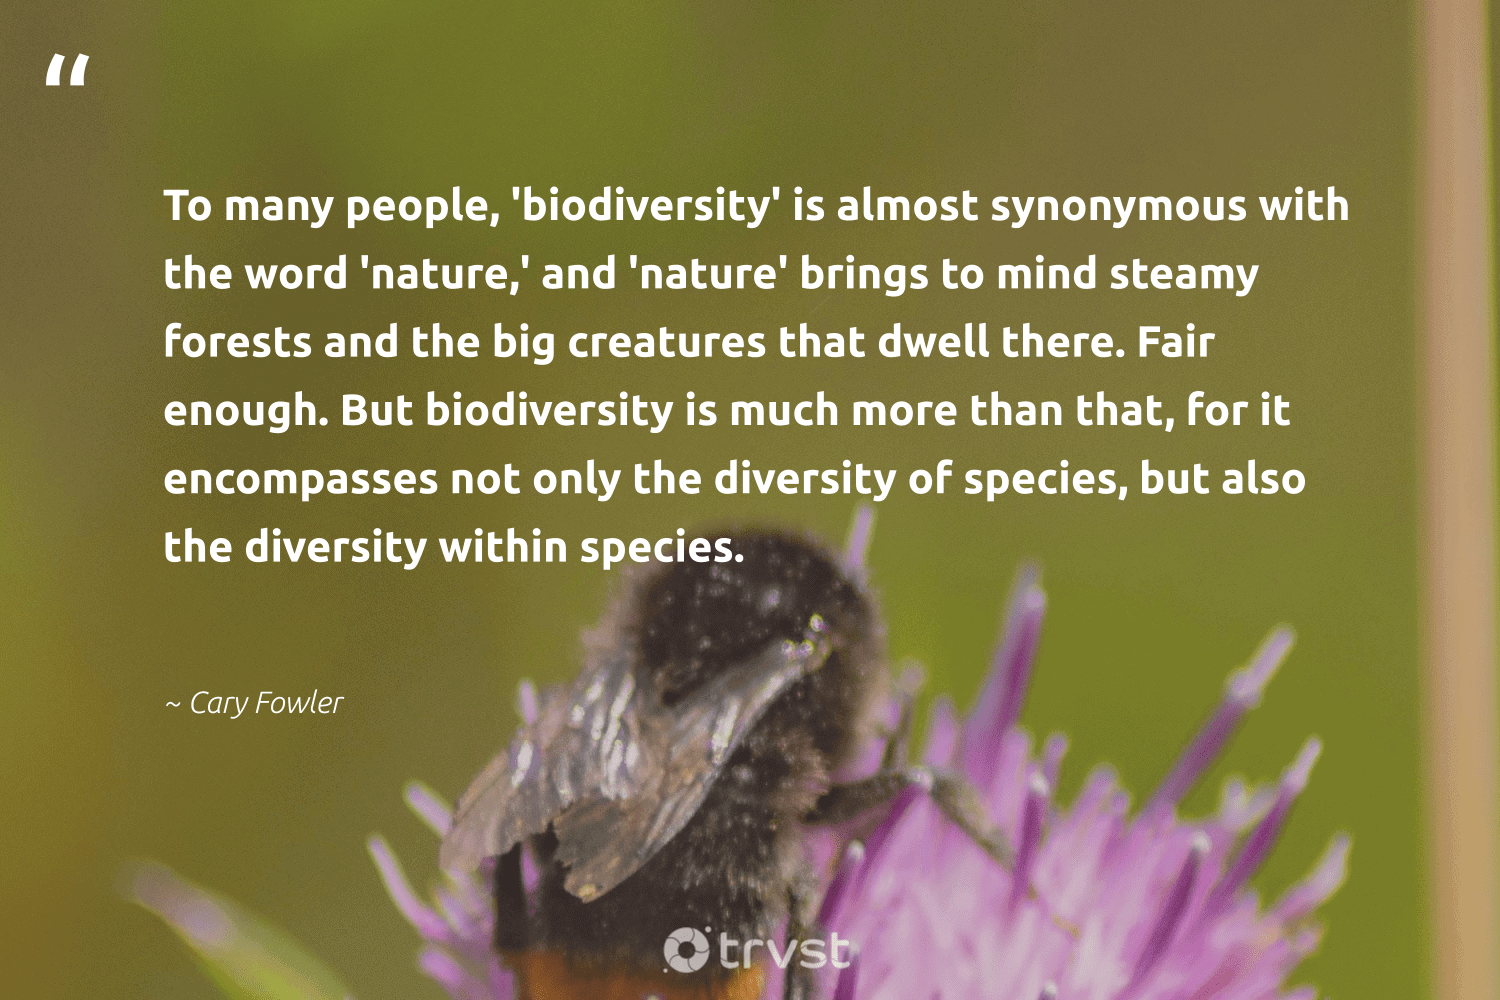 """""""To many people, 'biodiversity' is almost synonymous with the word 'nature,' and 'nature' brings to mind steamy forests and the big creatures that dwell there. Fair enough. But biodiversity is much more than that, for it encompasses not only the diversity of species, but also the diversity within species.""""  - Cary Fowler #trvst #quotes #biodiversity #nature #diversity #conservation #earth #bigcat #palaeontology #socialimpact #environment #mothernature"""